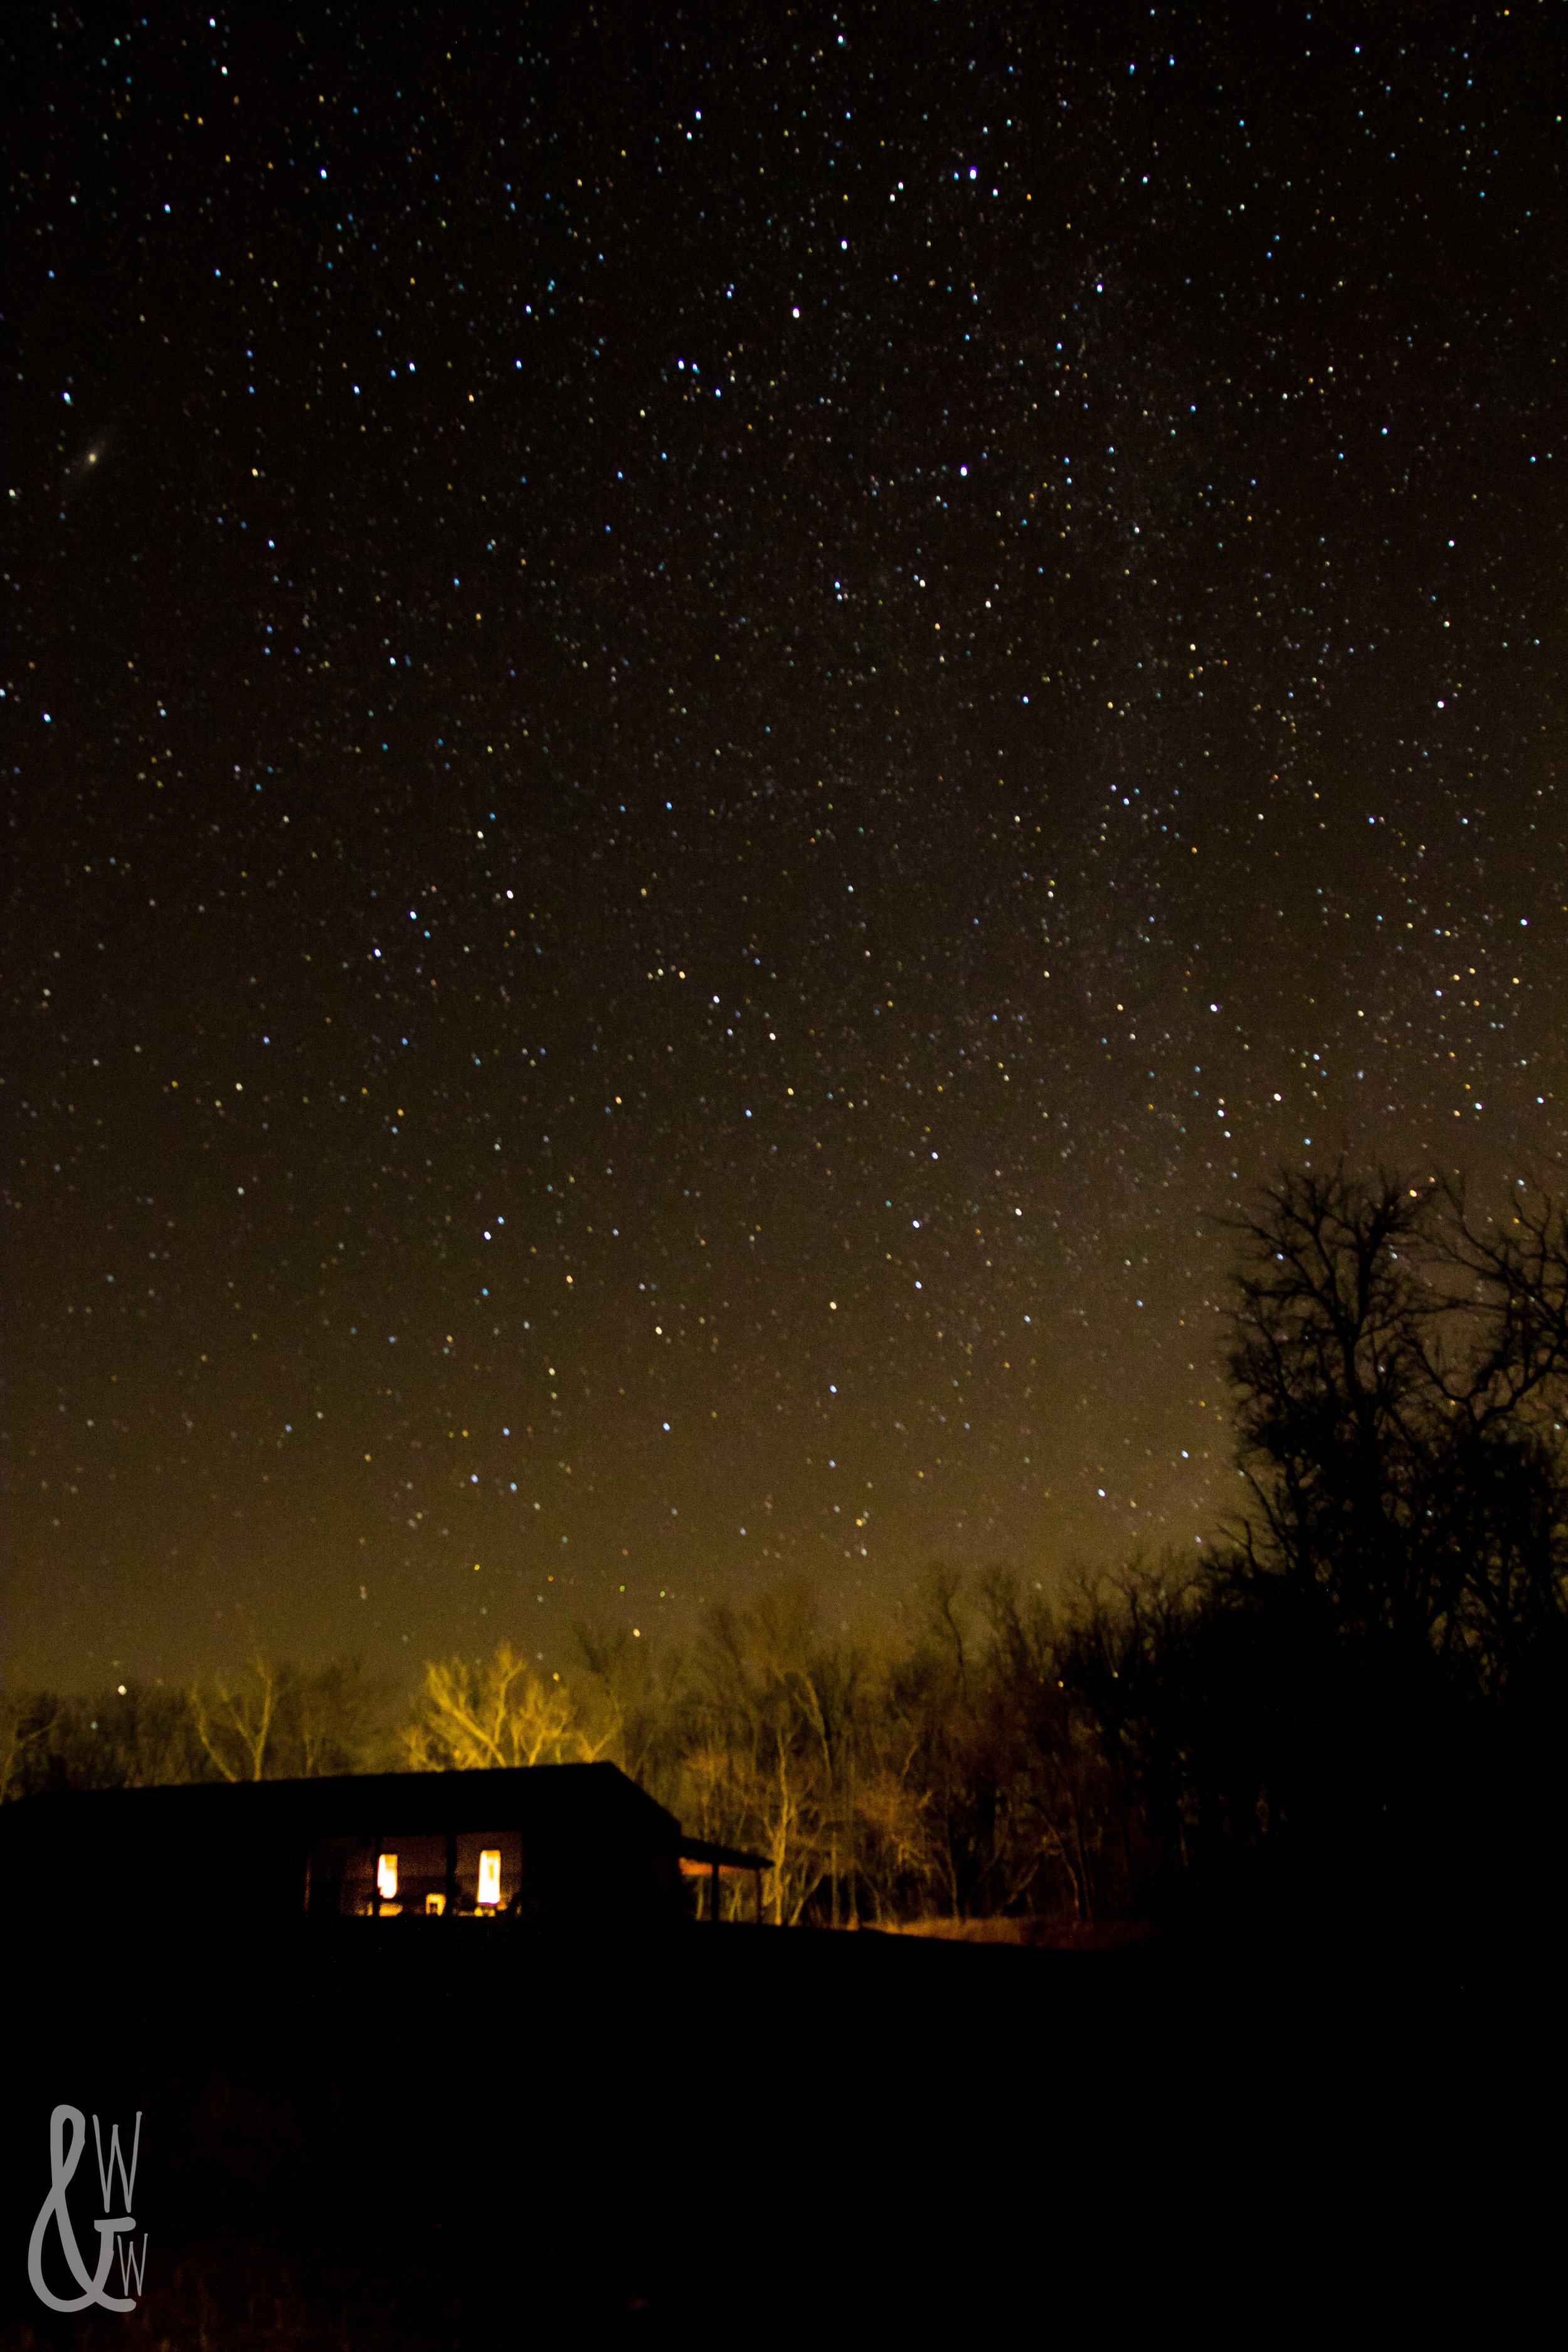 Winter photography at its best: starscapes!